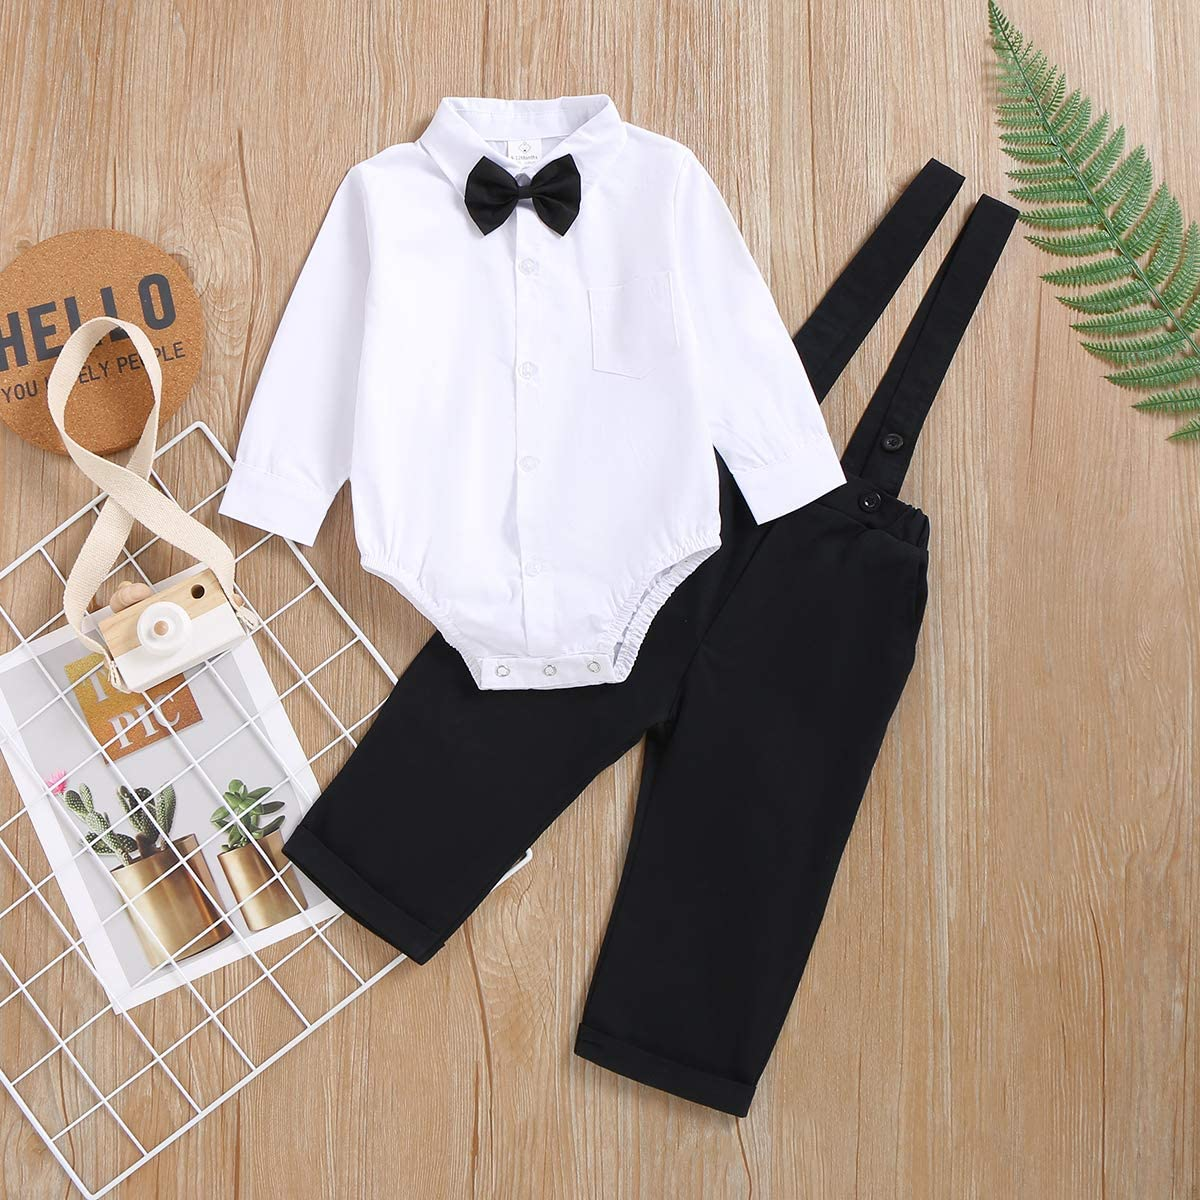 OPAWO 3Pcs Baby Boys Gentleman Outfit Set,Formal Wear Shirt+Bowtie+Suspenders Pants for Infant Birthday Party Cake Smash Photo Shoot Wedding Christening